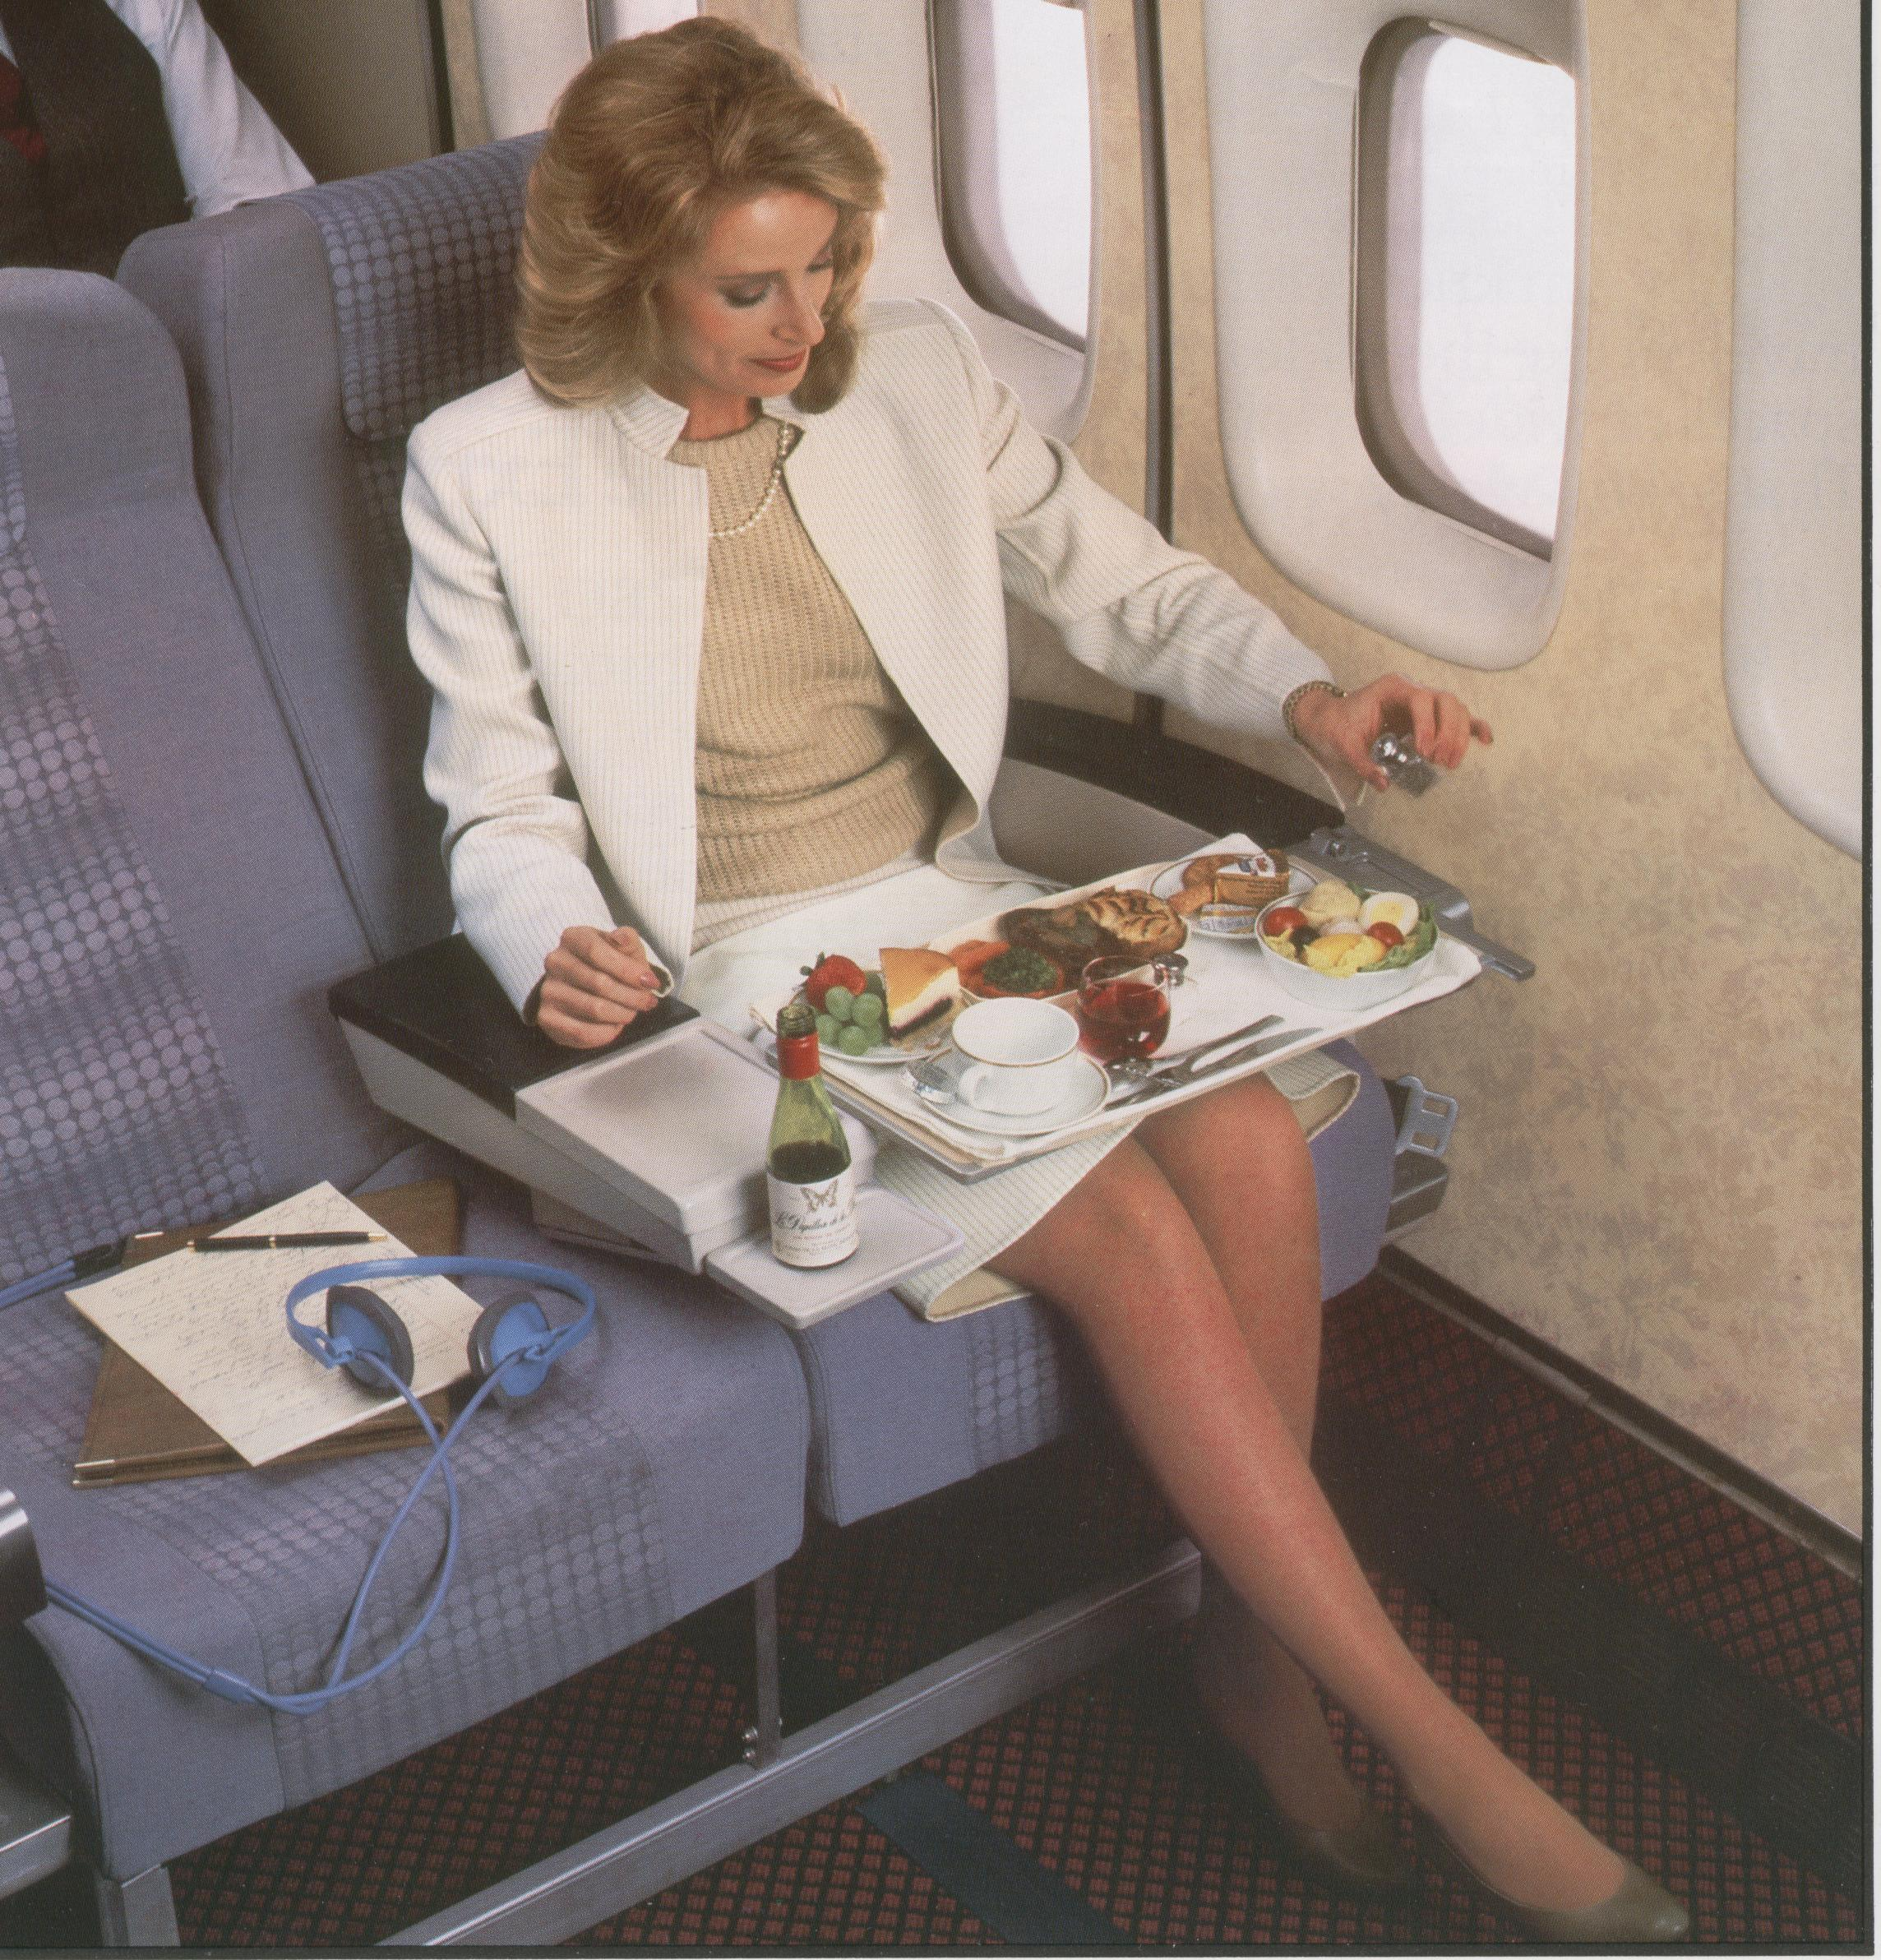 1980s A customer enjoying a meal in Pan Am's Clipper Class (business class) on a Boeing 747.  Pan Am's first Clipper Class Cabins offered 8 across seating instead of the 10 across in Economy class.